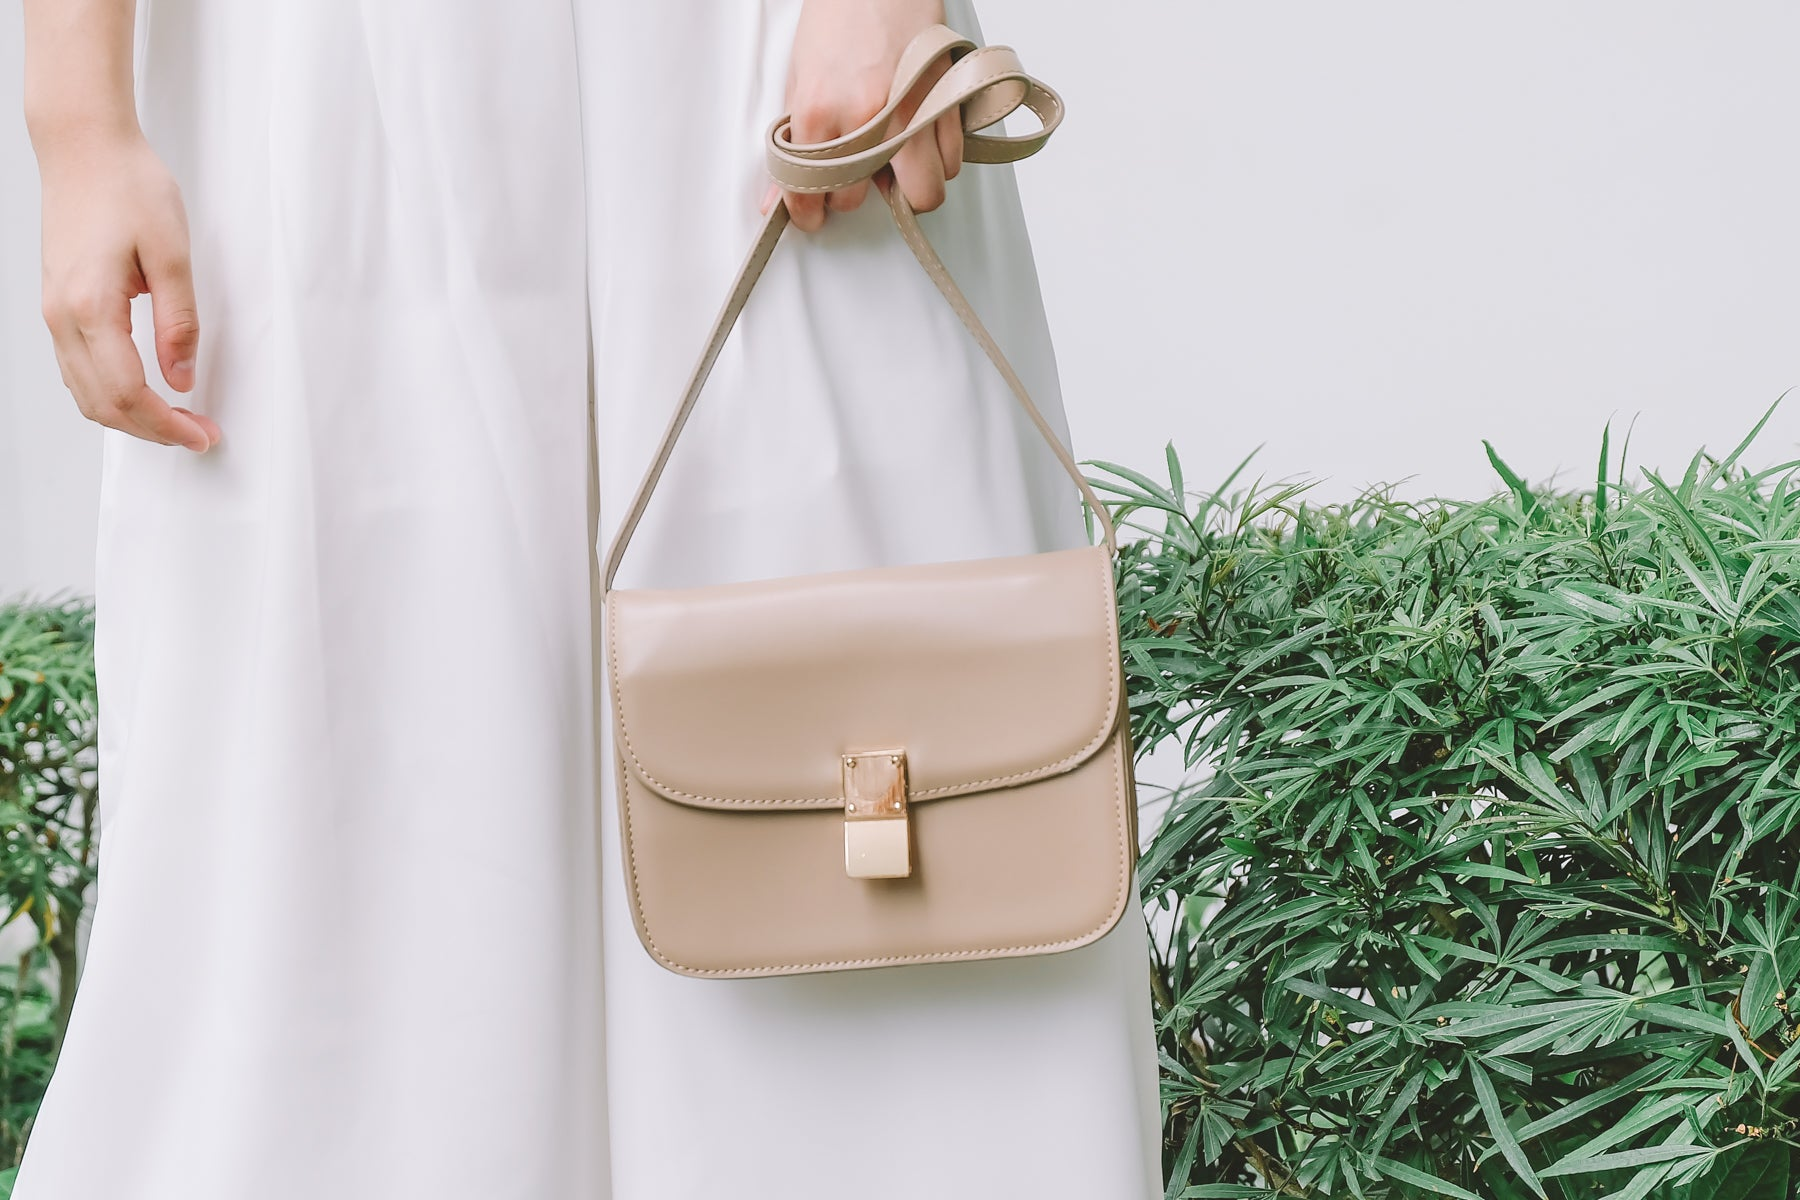 Gold Buckle Crossbody Bag in Taupe